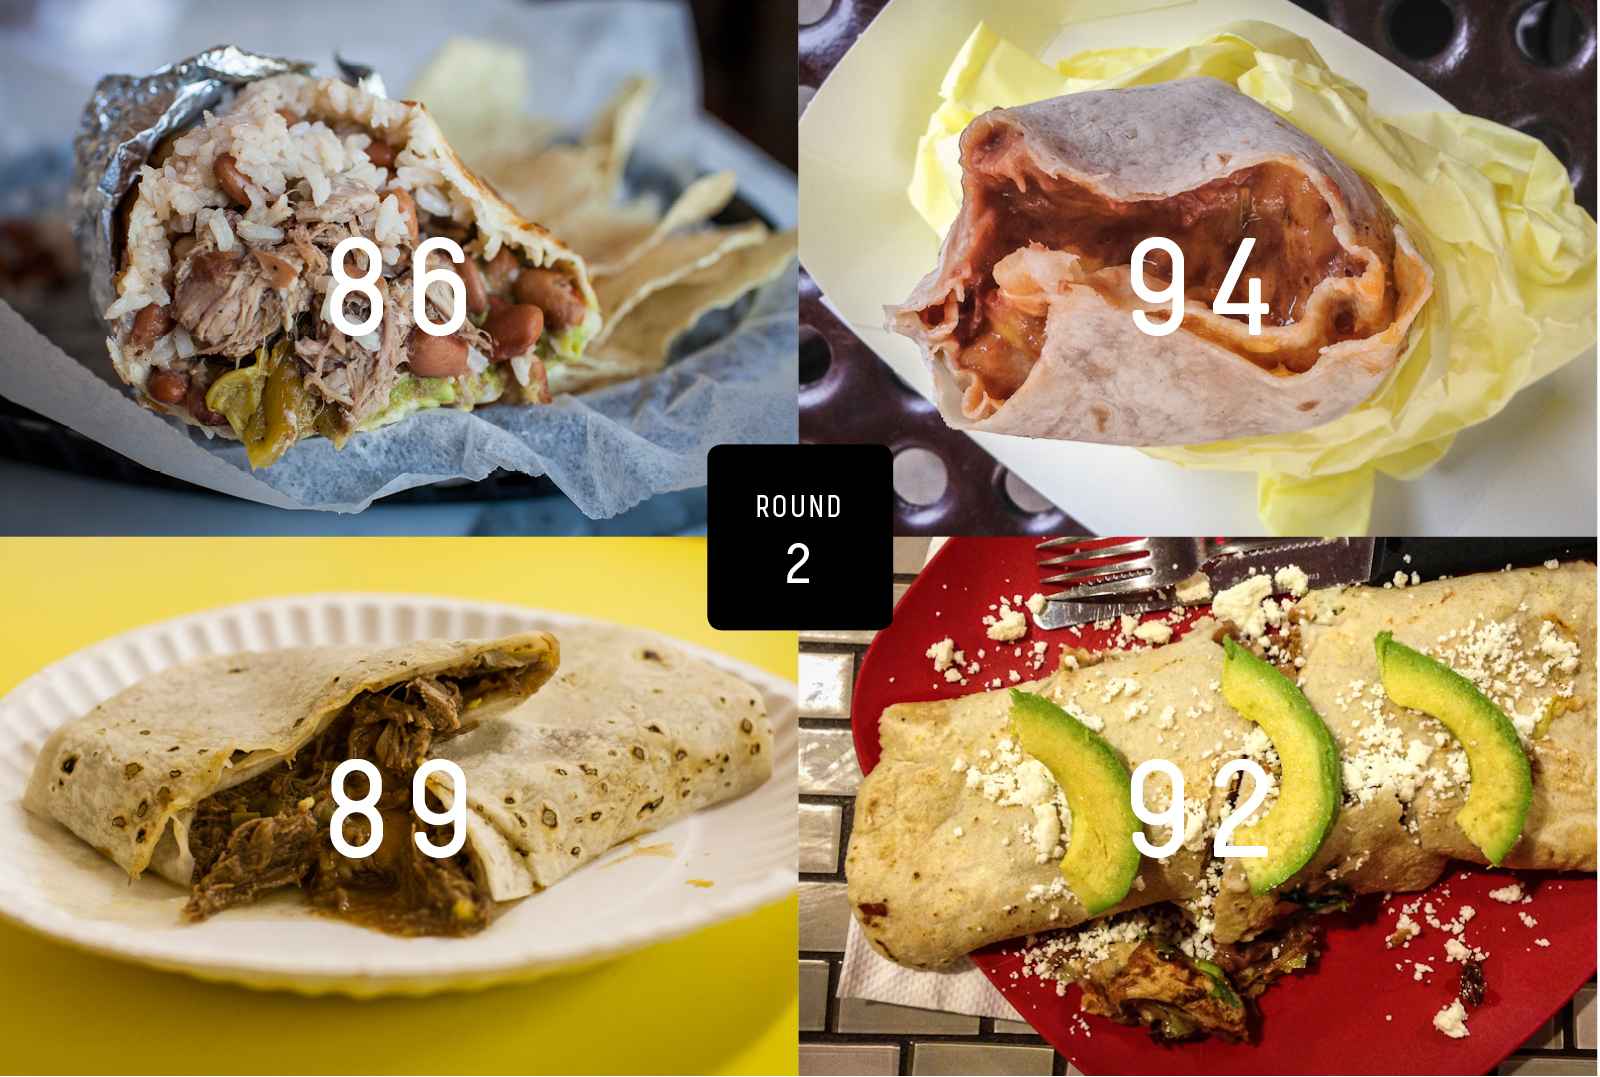 Clockwise from top left: Bell Street Burritos, Al & Bea's Mexican Food, Pancho's Mexican Taqueria, Carolina's Mexican Food.